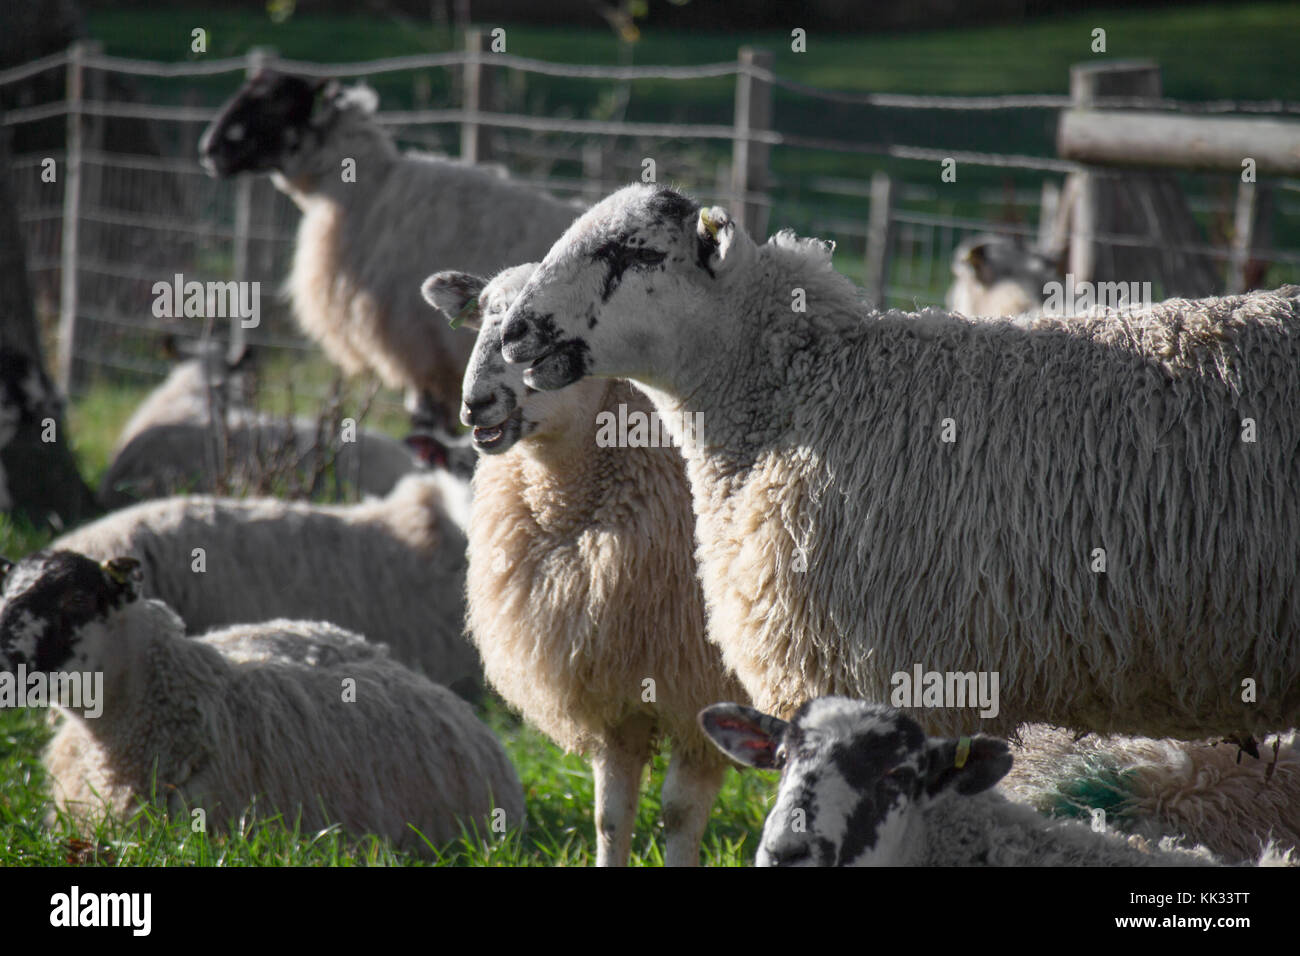 Sheep : North Country mule ewe with tails on grass with long wool before shearing, livestock in East Sussex Kent Stock Photo